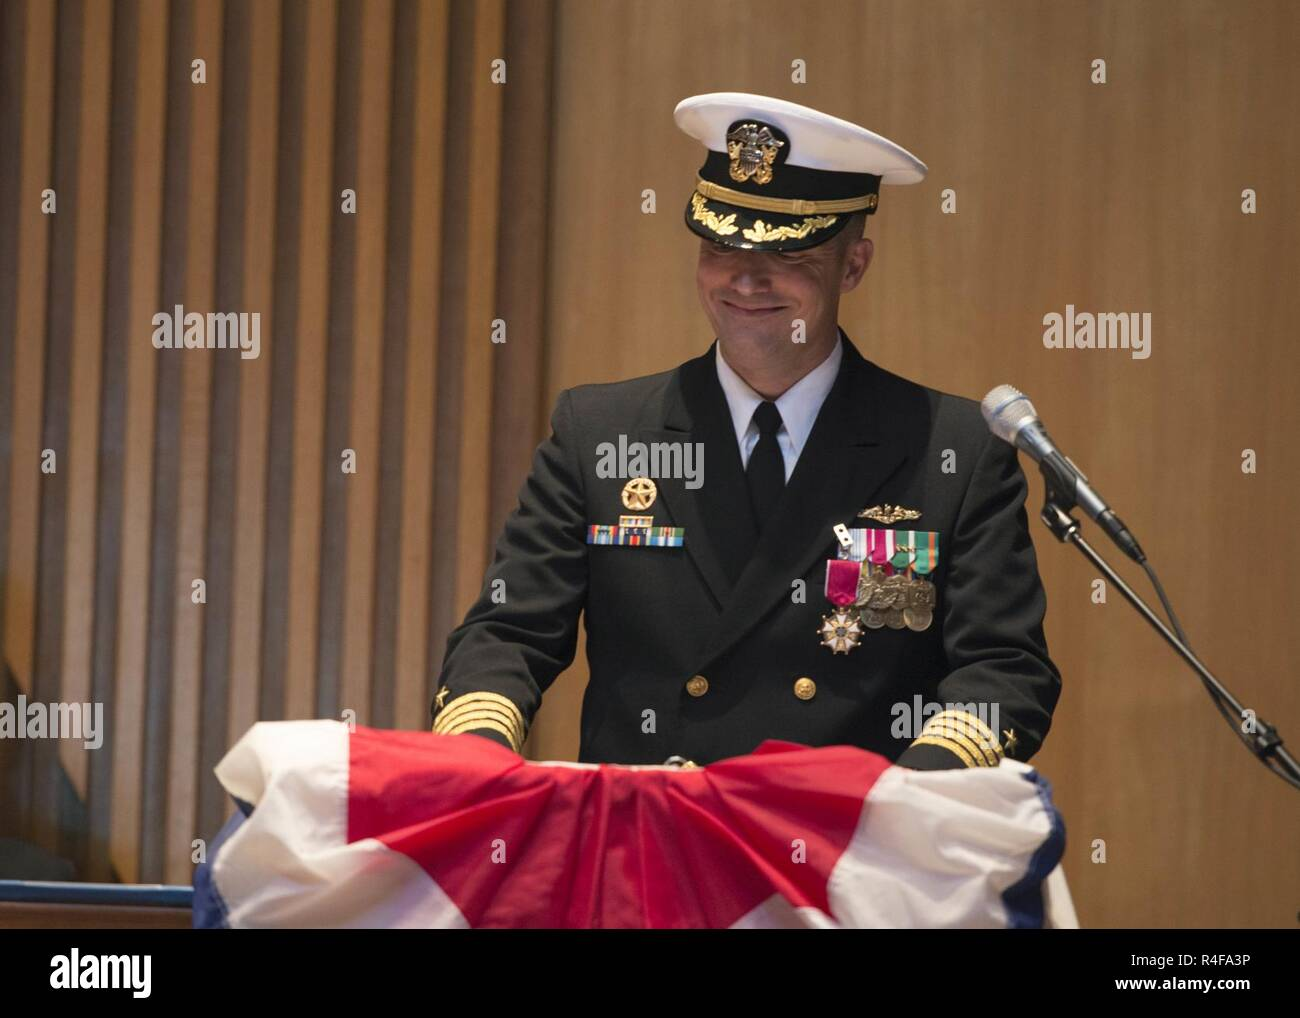 BANGOR, Wash. (Oct. 25, 2016) Capt. Jeffrey Bierley, from Birmingham, Alabama, delivers remarks during a change of command ceremony for the fast-attack submarine USS Seawolf (SSN 21). During the ceremony, held at Bangor Chapel, Bierley turned over command to Cmdr. Christopher George, from Homedale, Idaho. - Stock Image